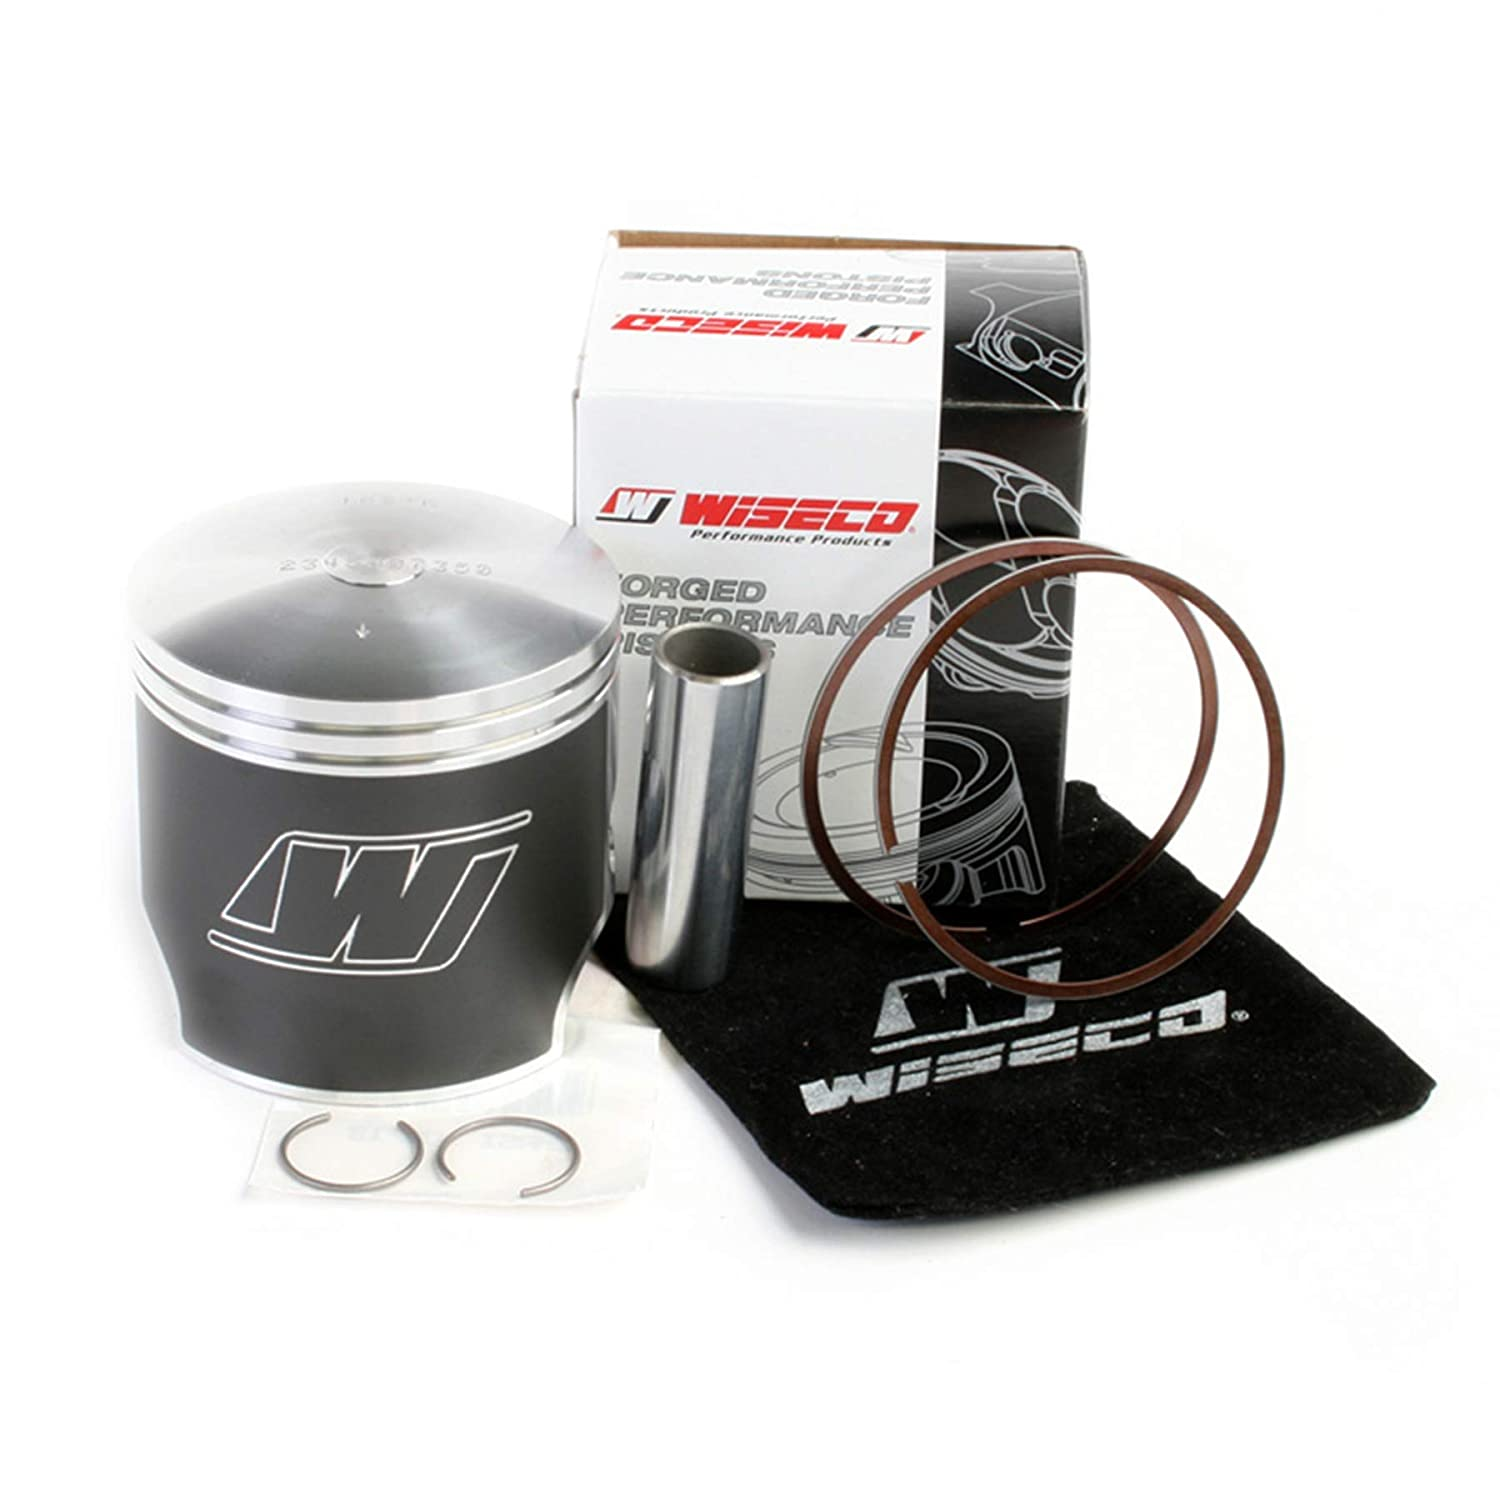 Standard Bore 75.00mm For 1992 Kawasaki JS550 550SX Personal Watercraft 531cc Piston Kit